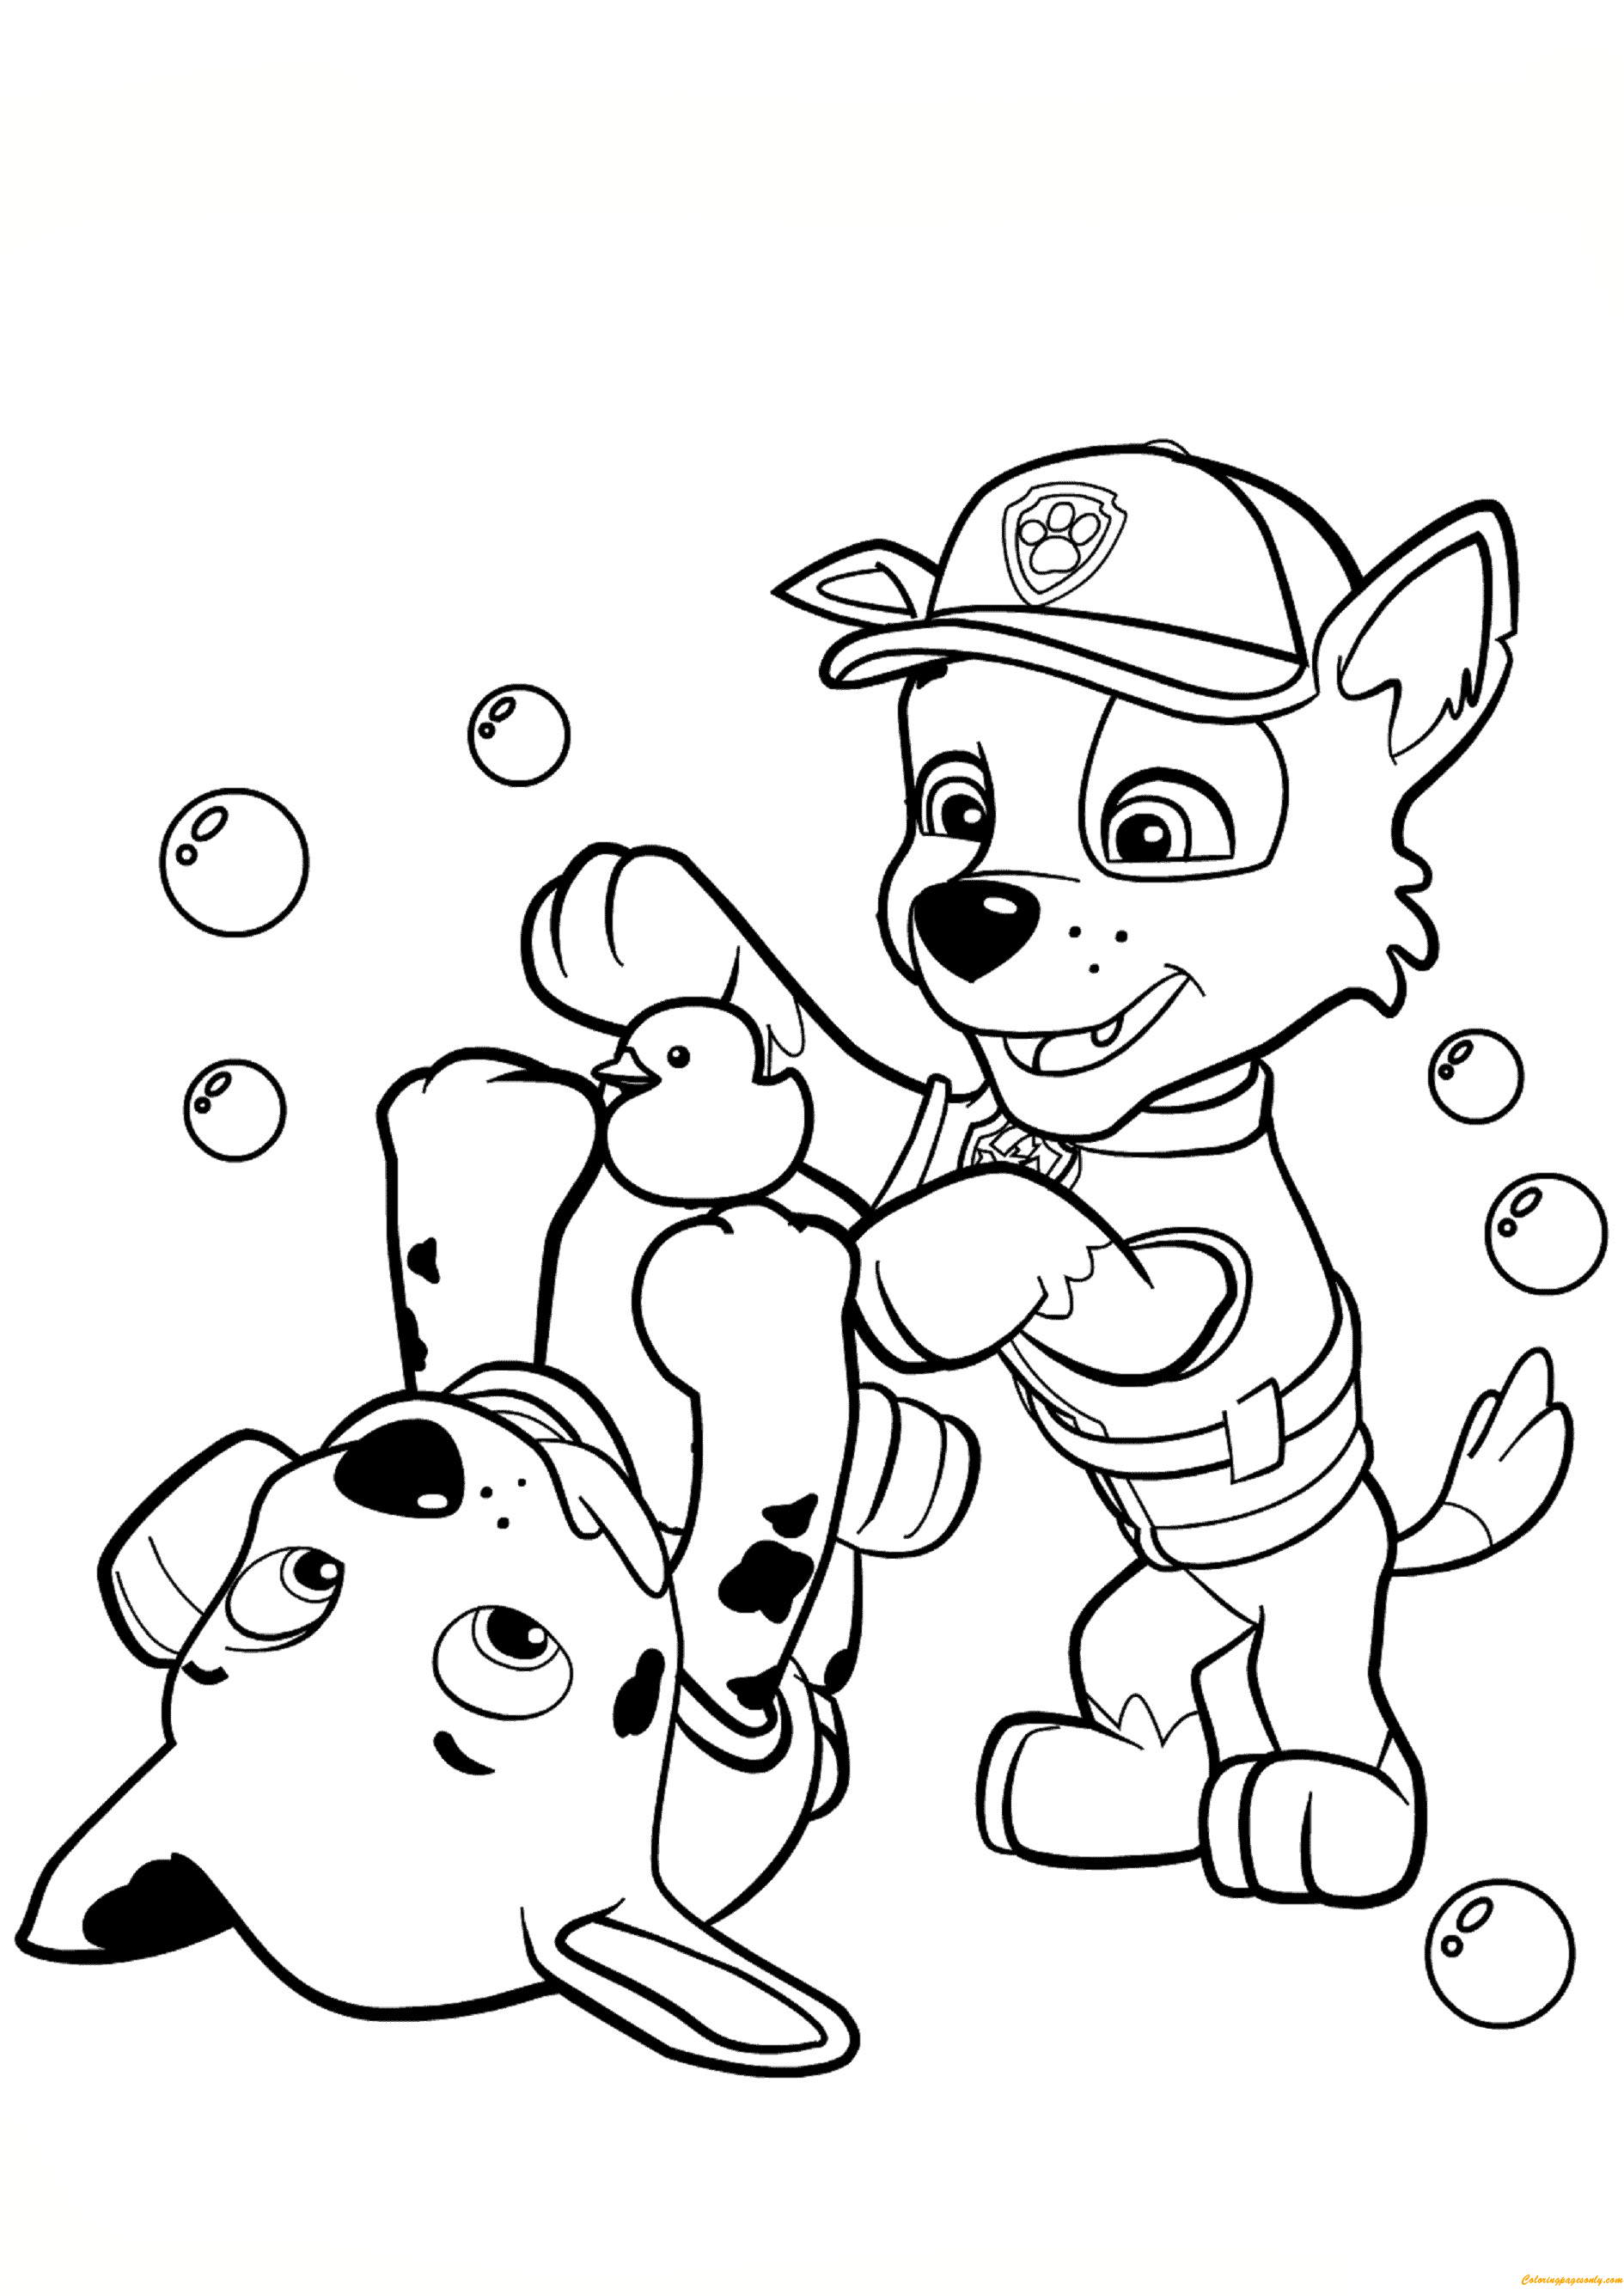 Paw Patrol Rocky And Marshall Coloring Page Free